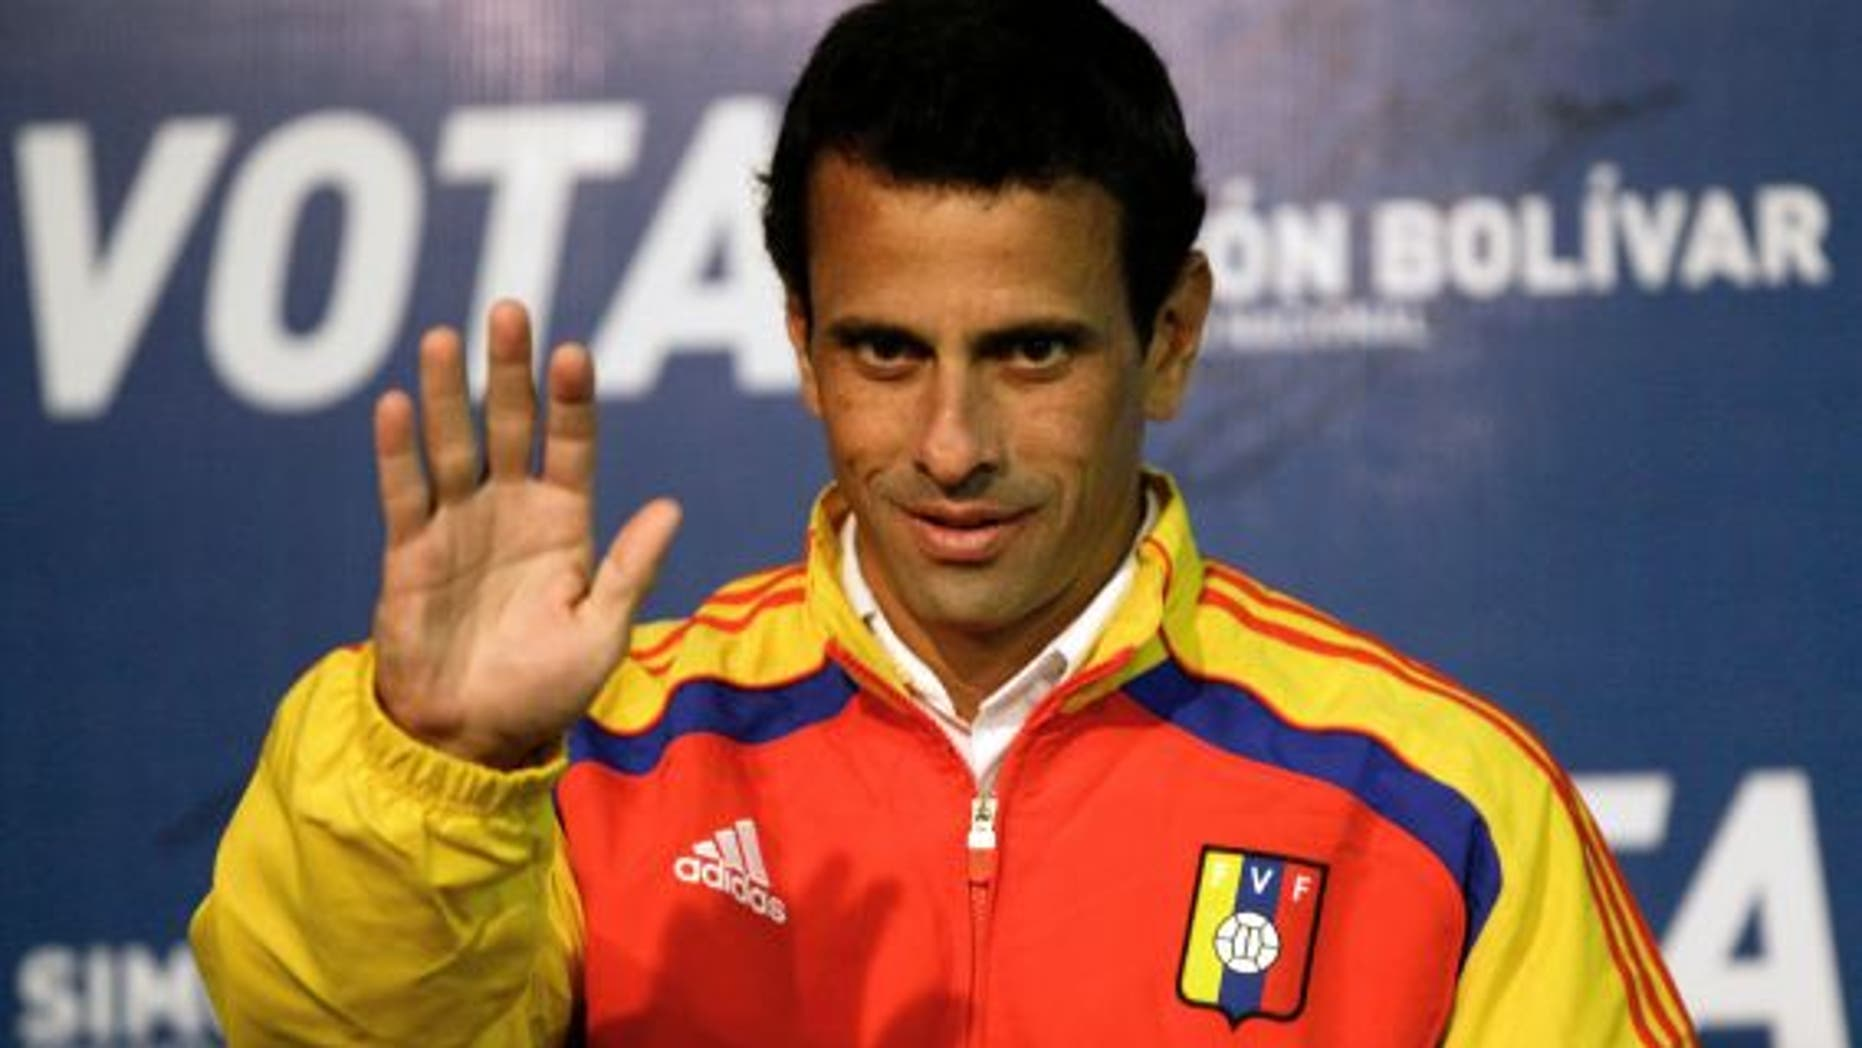 April 13, 2013: Opposition presidential candidate Henrique Capriles waves as he arrives to a news conference in Caracas, Venezuela.